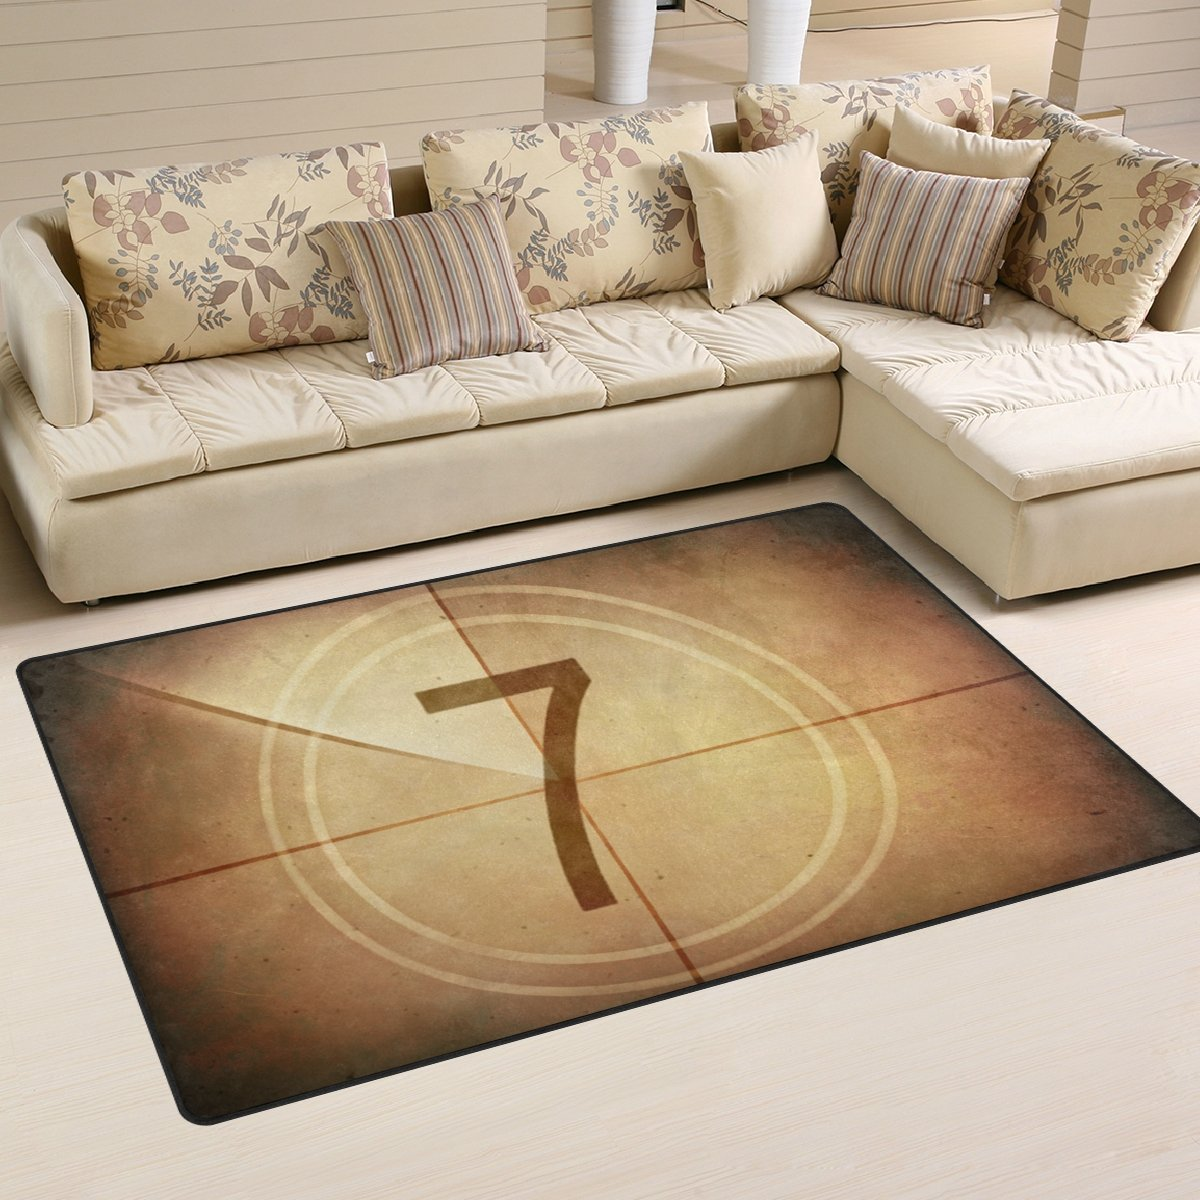 LORVIES Countdown Seven On The Old Movie Screen Area Rug Carpet Non-Slip Floor Mat Doormats for Living Room Bedroom 31 x 20 inches